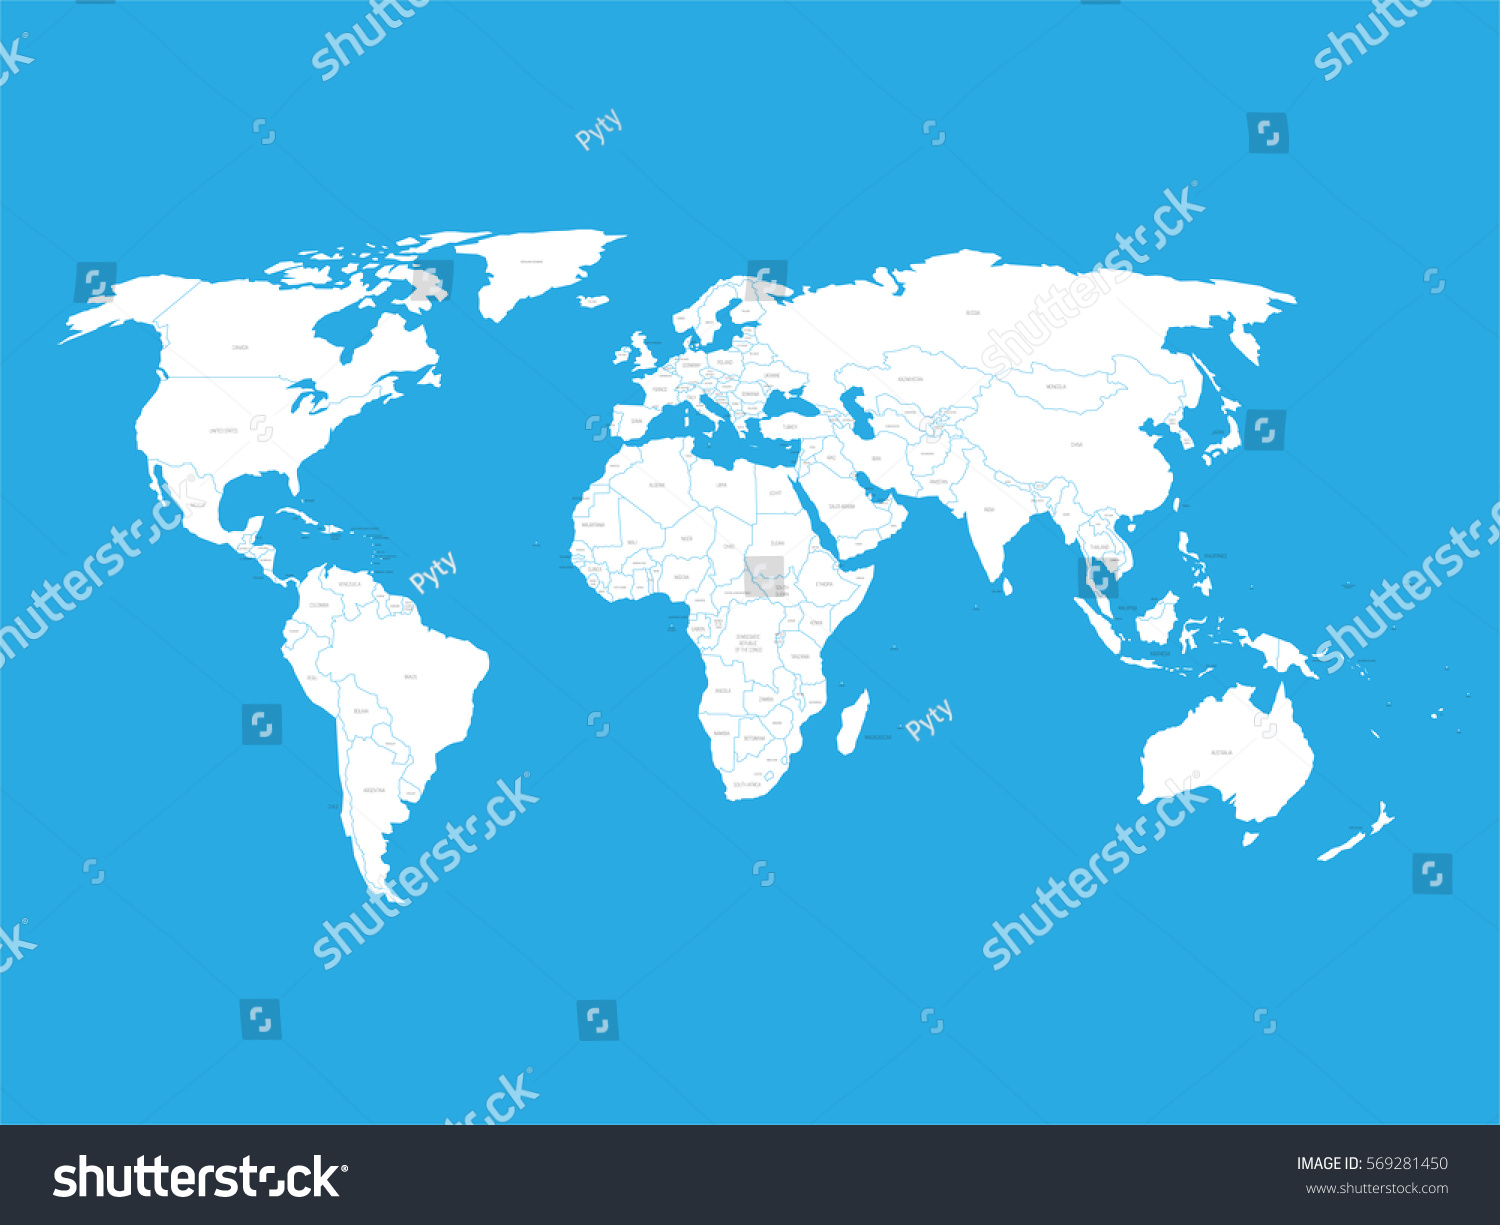 Political vector world map state name vectores en stock 569281450 political vector world map with state name labels white land with black text on blue gumiabroncs Choice Image